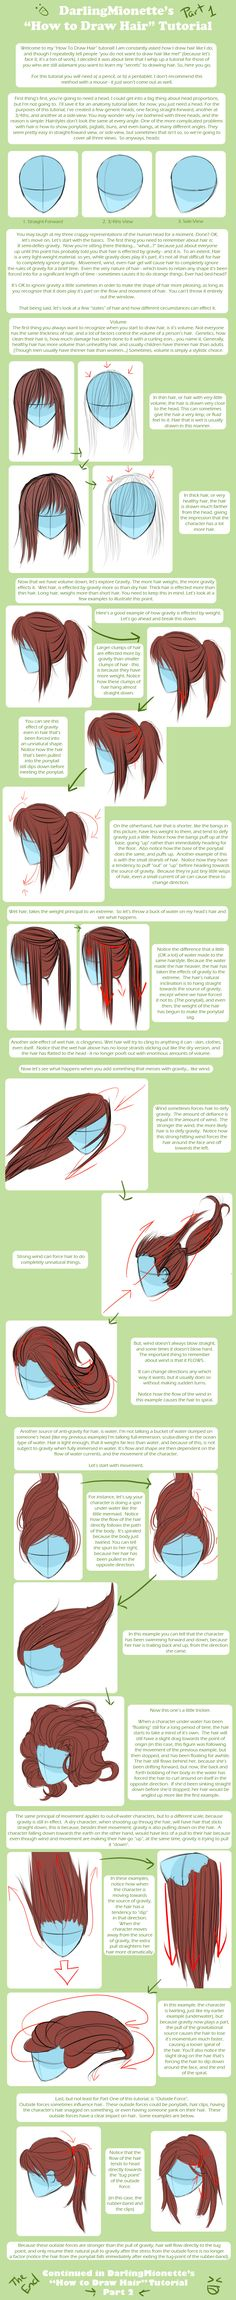 Tutorial - How To Draw Hair 1 by =DarlingMionette on deviantART